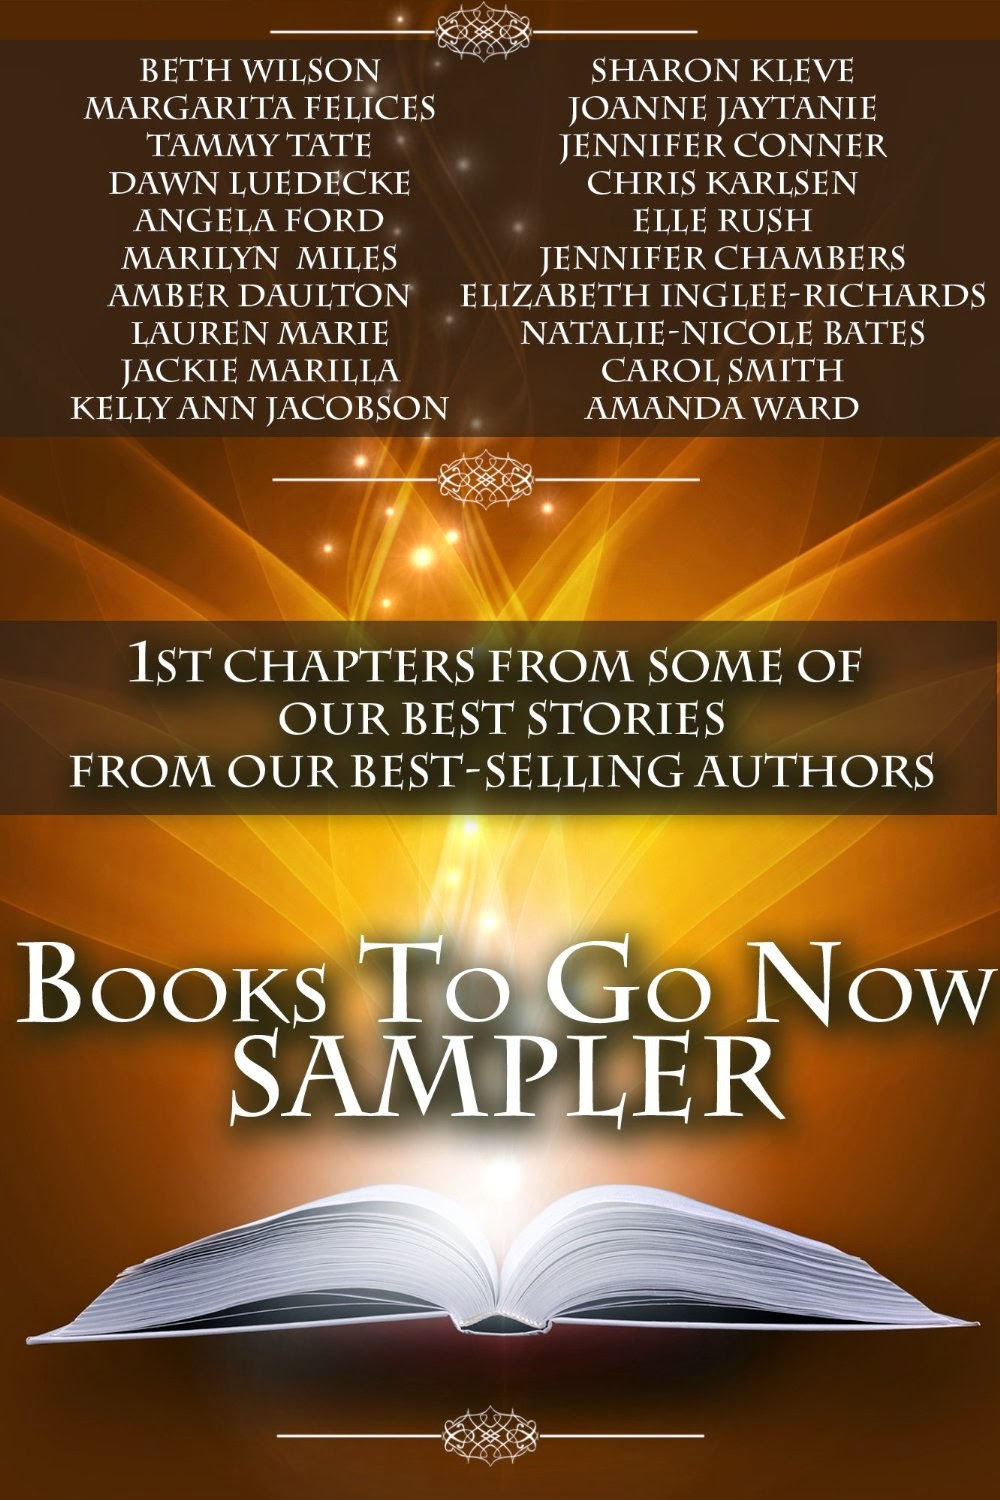 http://www.amazon.com/Jump-into-Fall-Sampler-Books-ebook/dp/B00O145QSW/